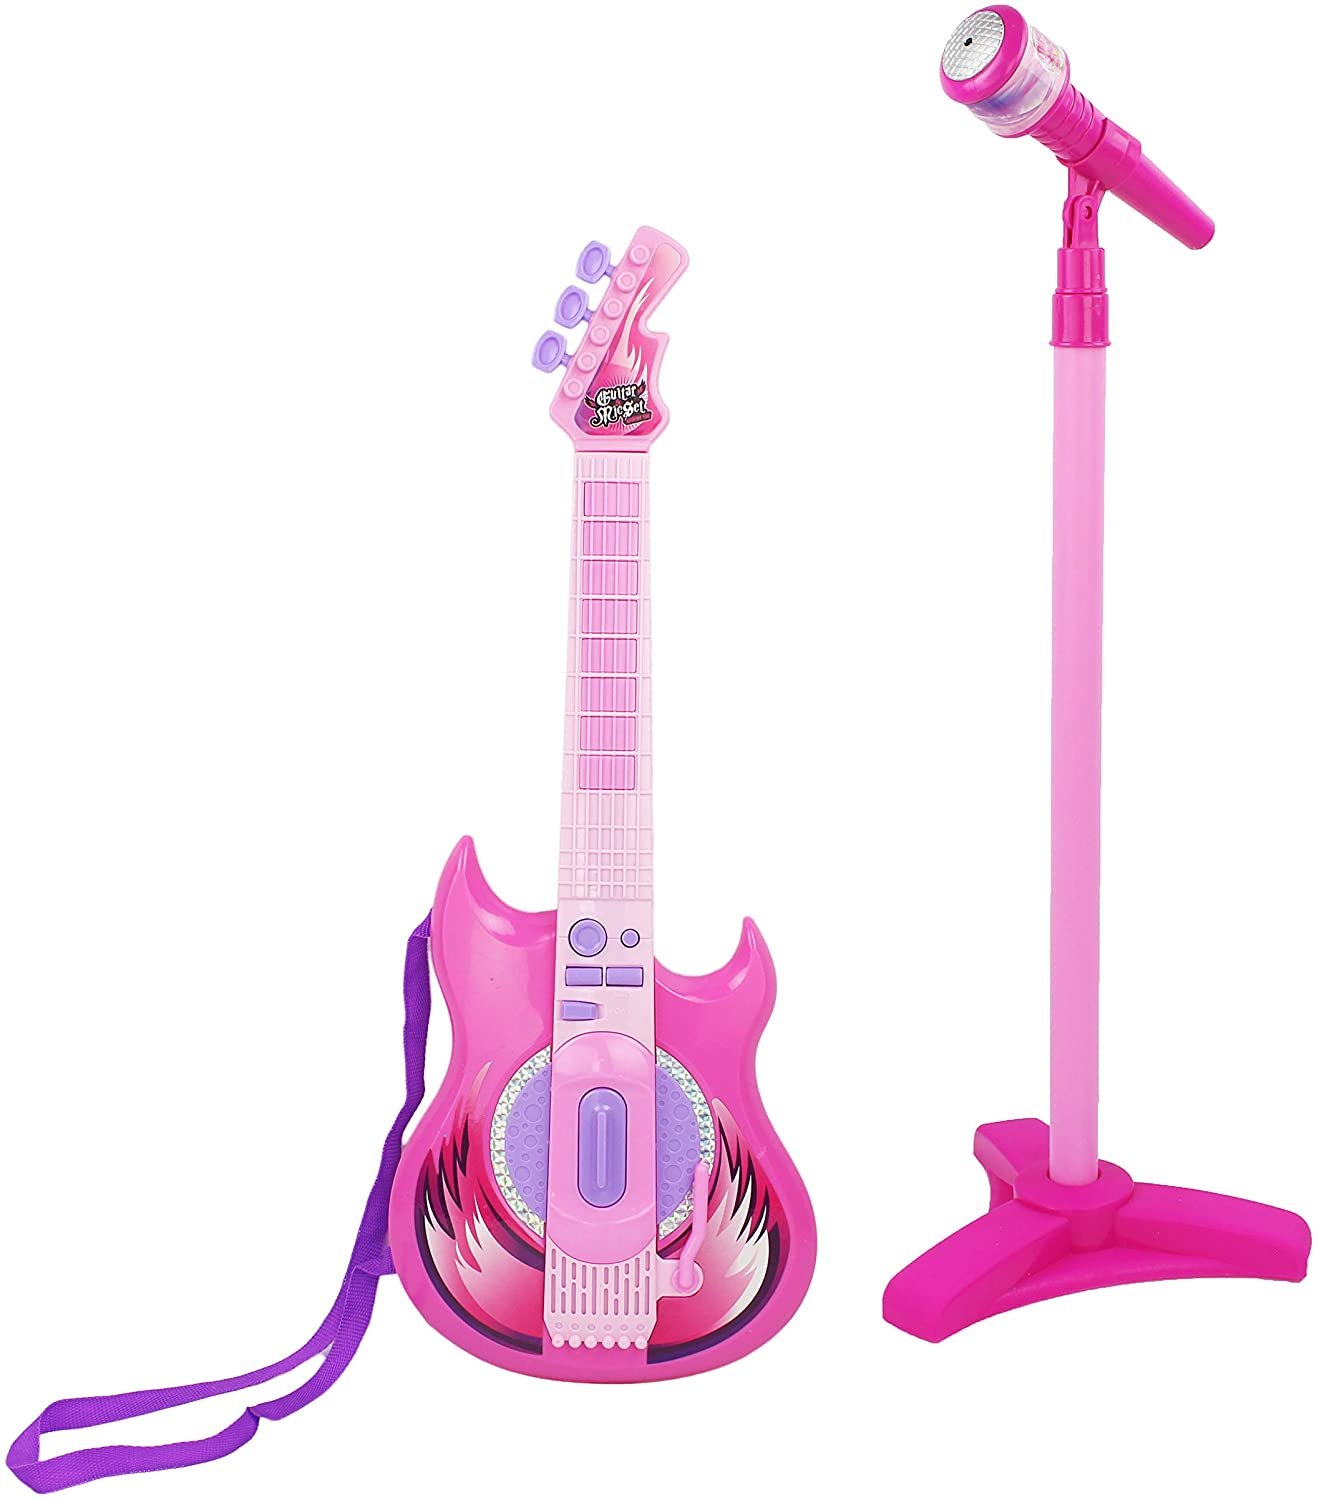 AJ Toys & Games Battery Operated Musical Instrument Playset with Toy Electric Guitar & Microphone, Be A Rockstar!